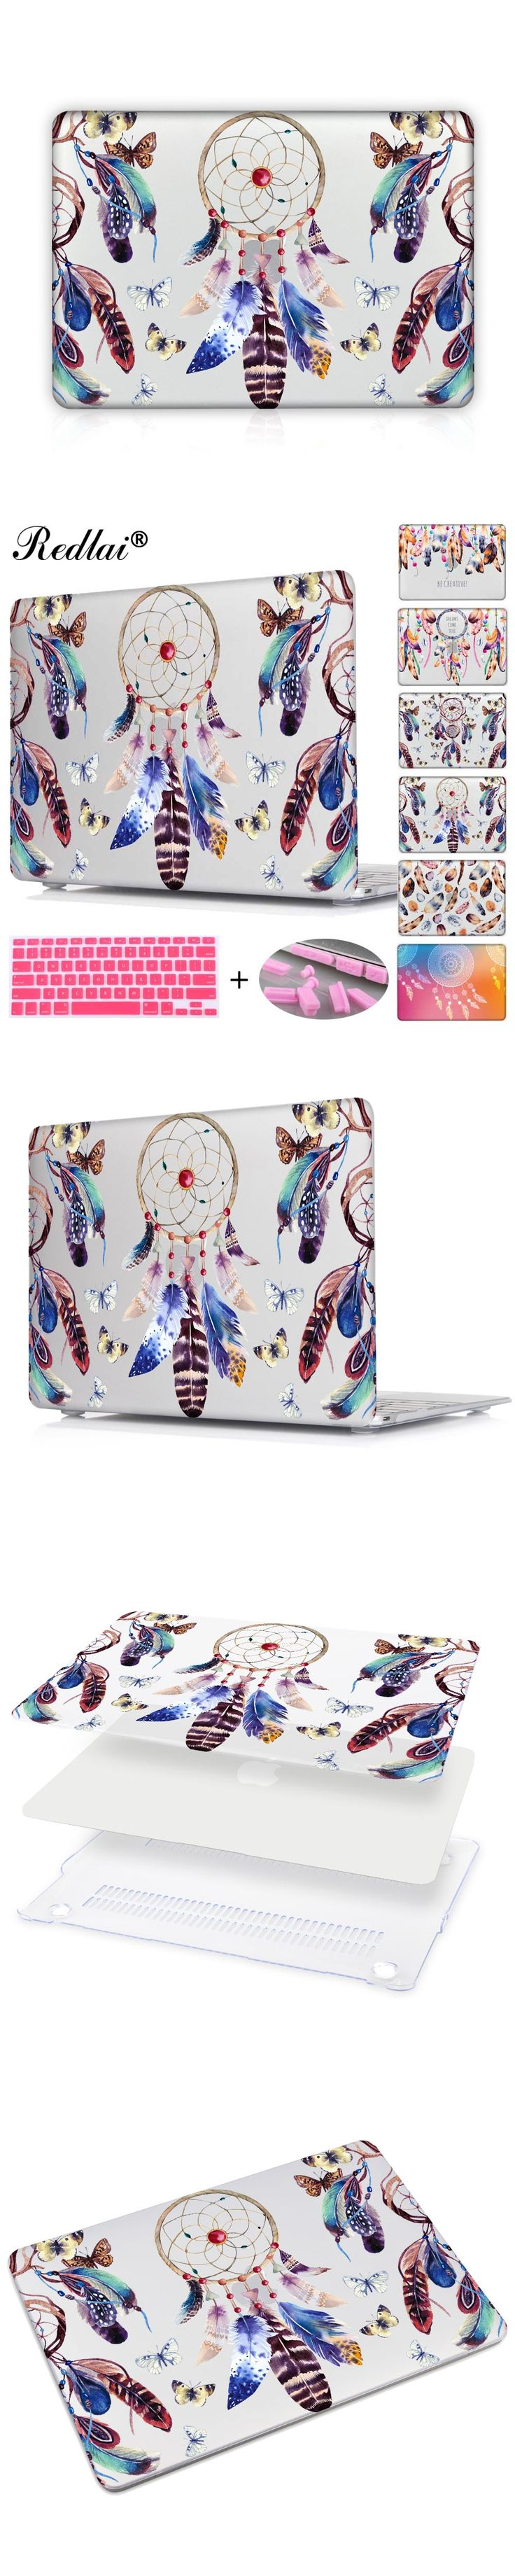 Luxury Feathers Set Dream Catcher Laptop Bag For Macbook Pro 13 Retina 12 15 Cover Clear Hard Cover For Macbook Air 11 13 Case